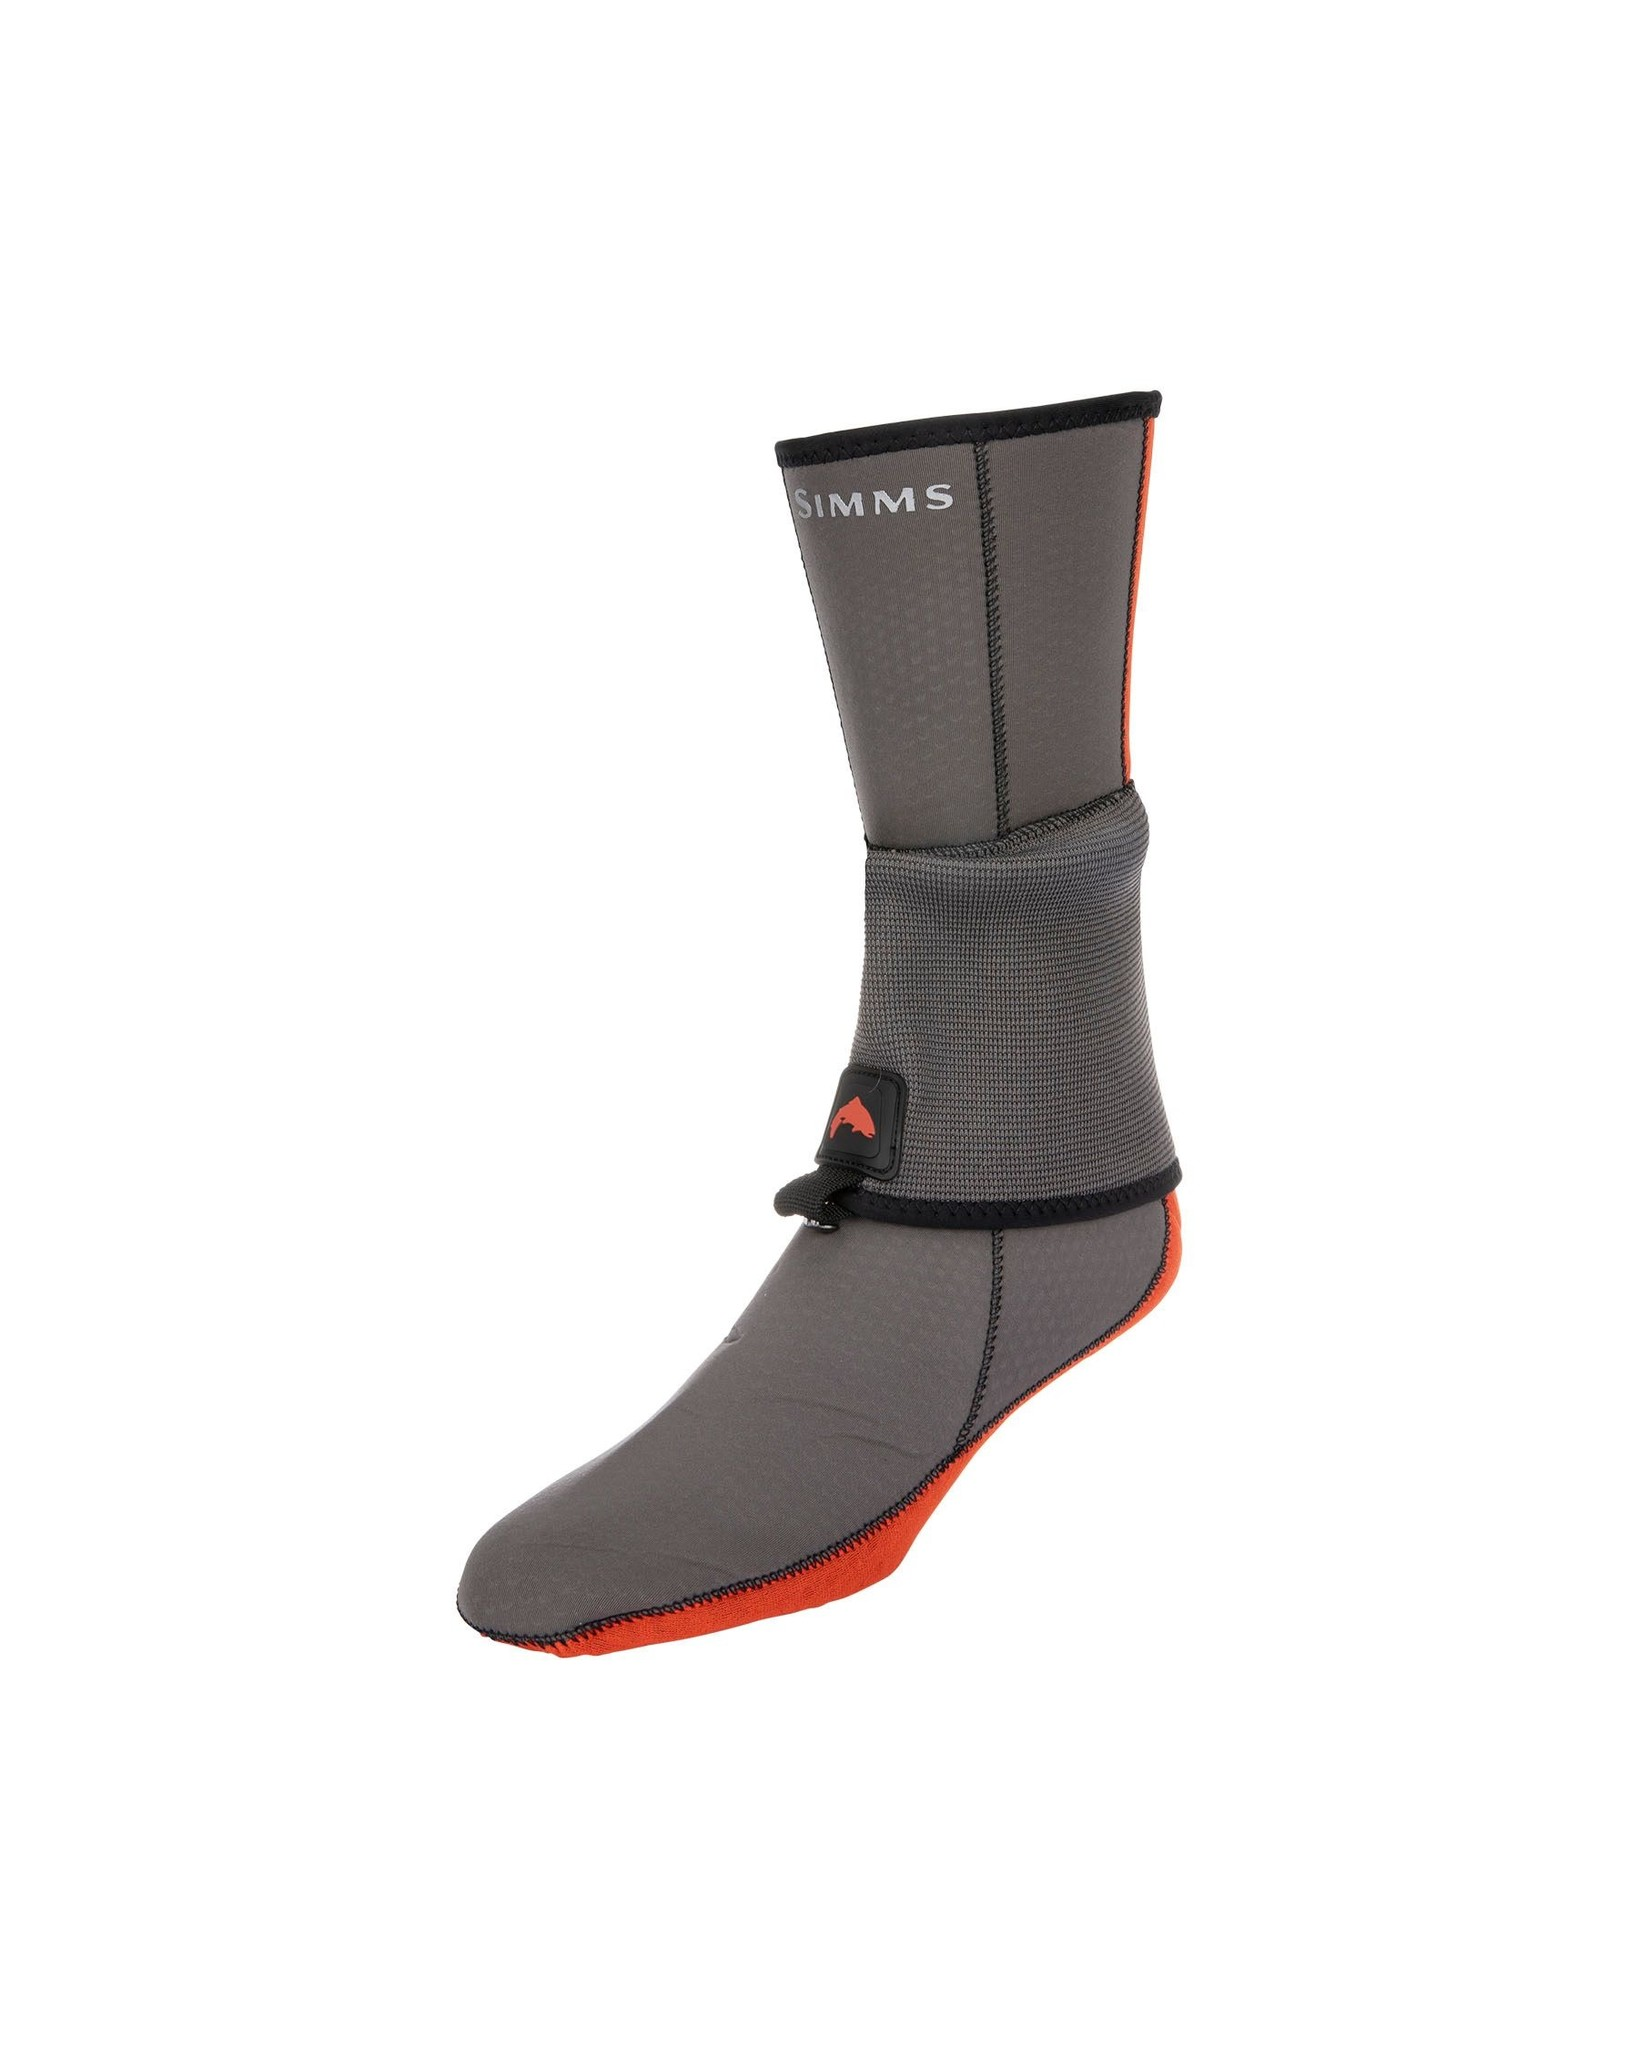 SIMMS Men's Flyweight Neoprene Wet Wading Sock